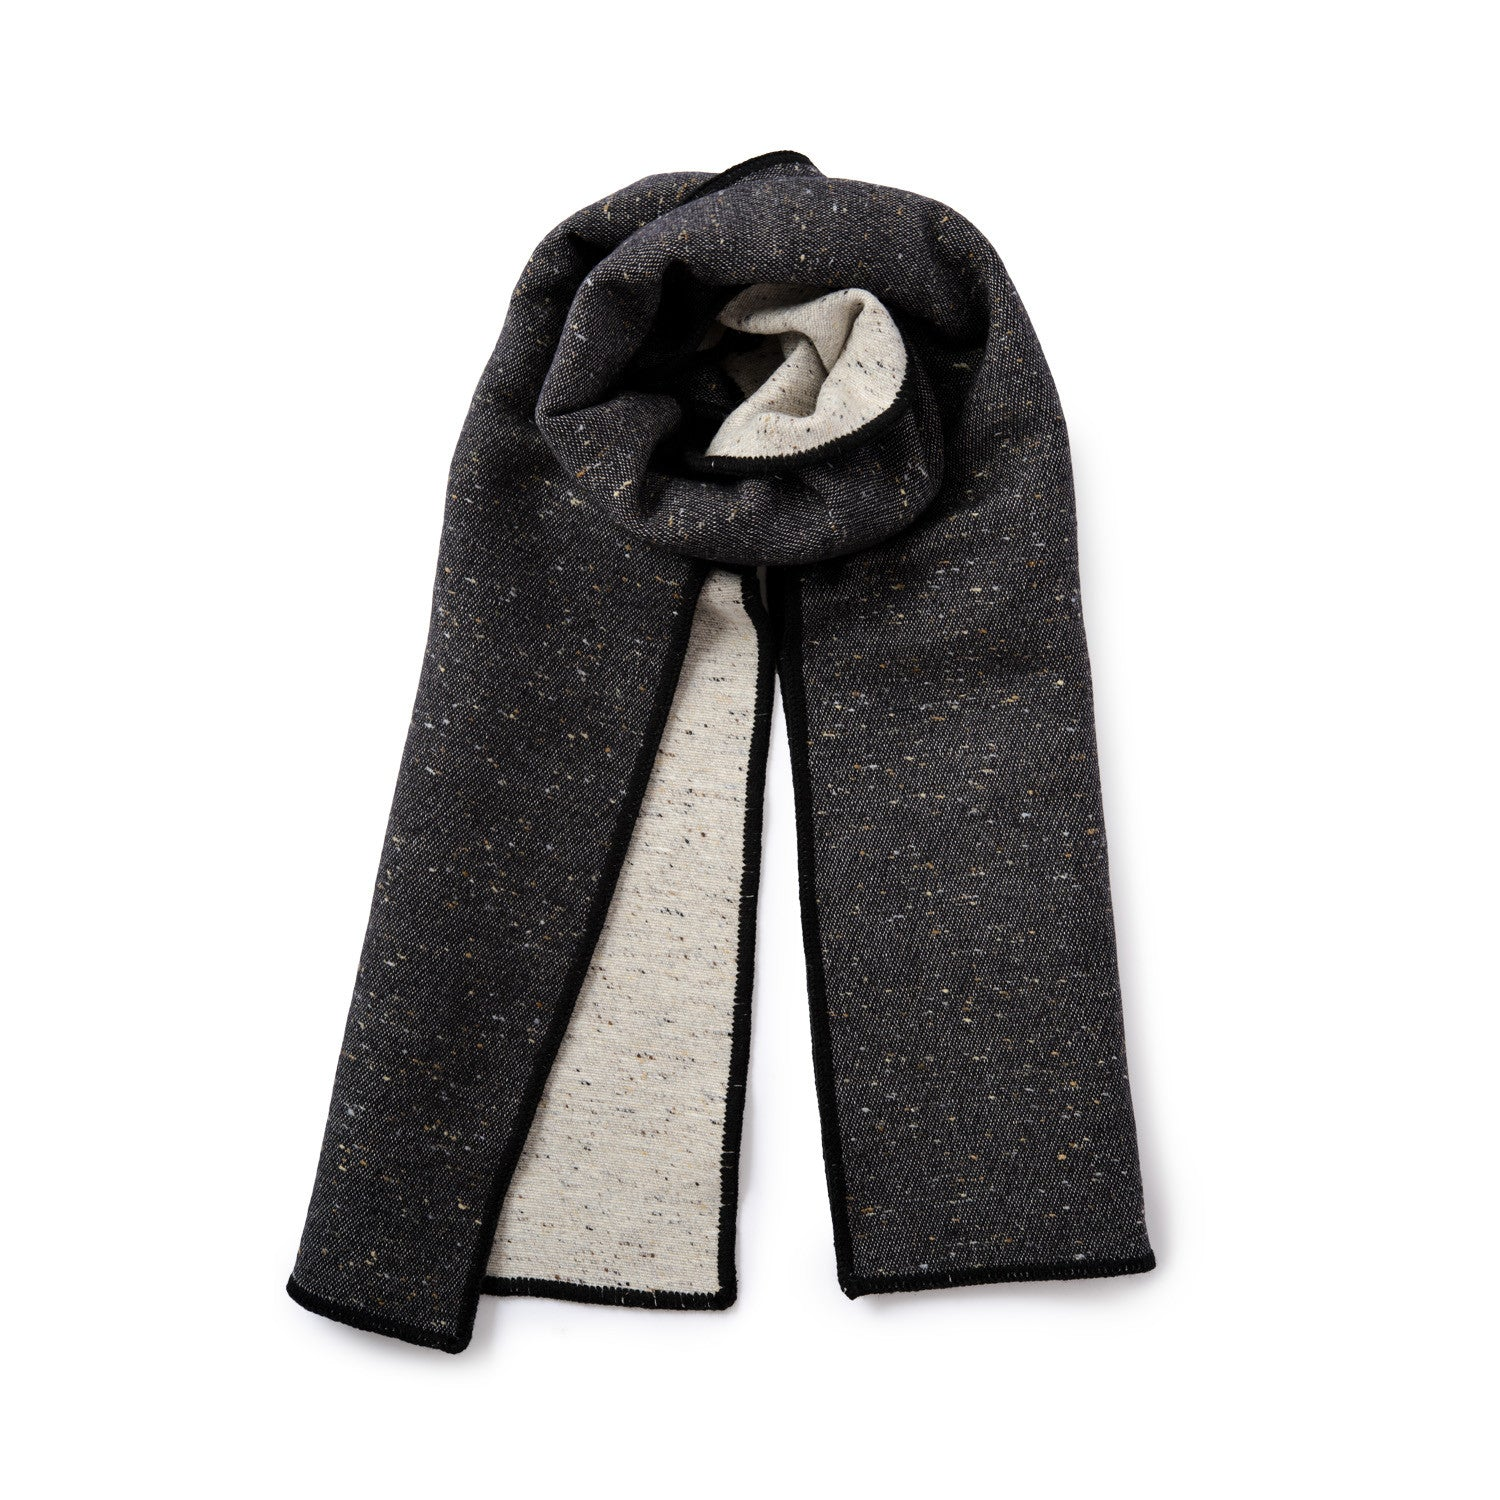 Sandringham Plain Donegal Wool Reversible Scarf